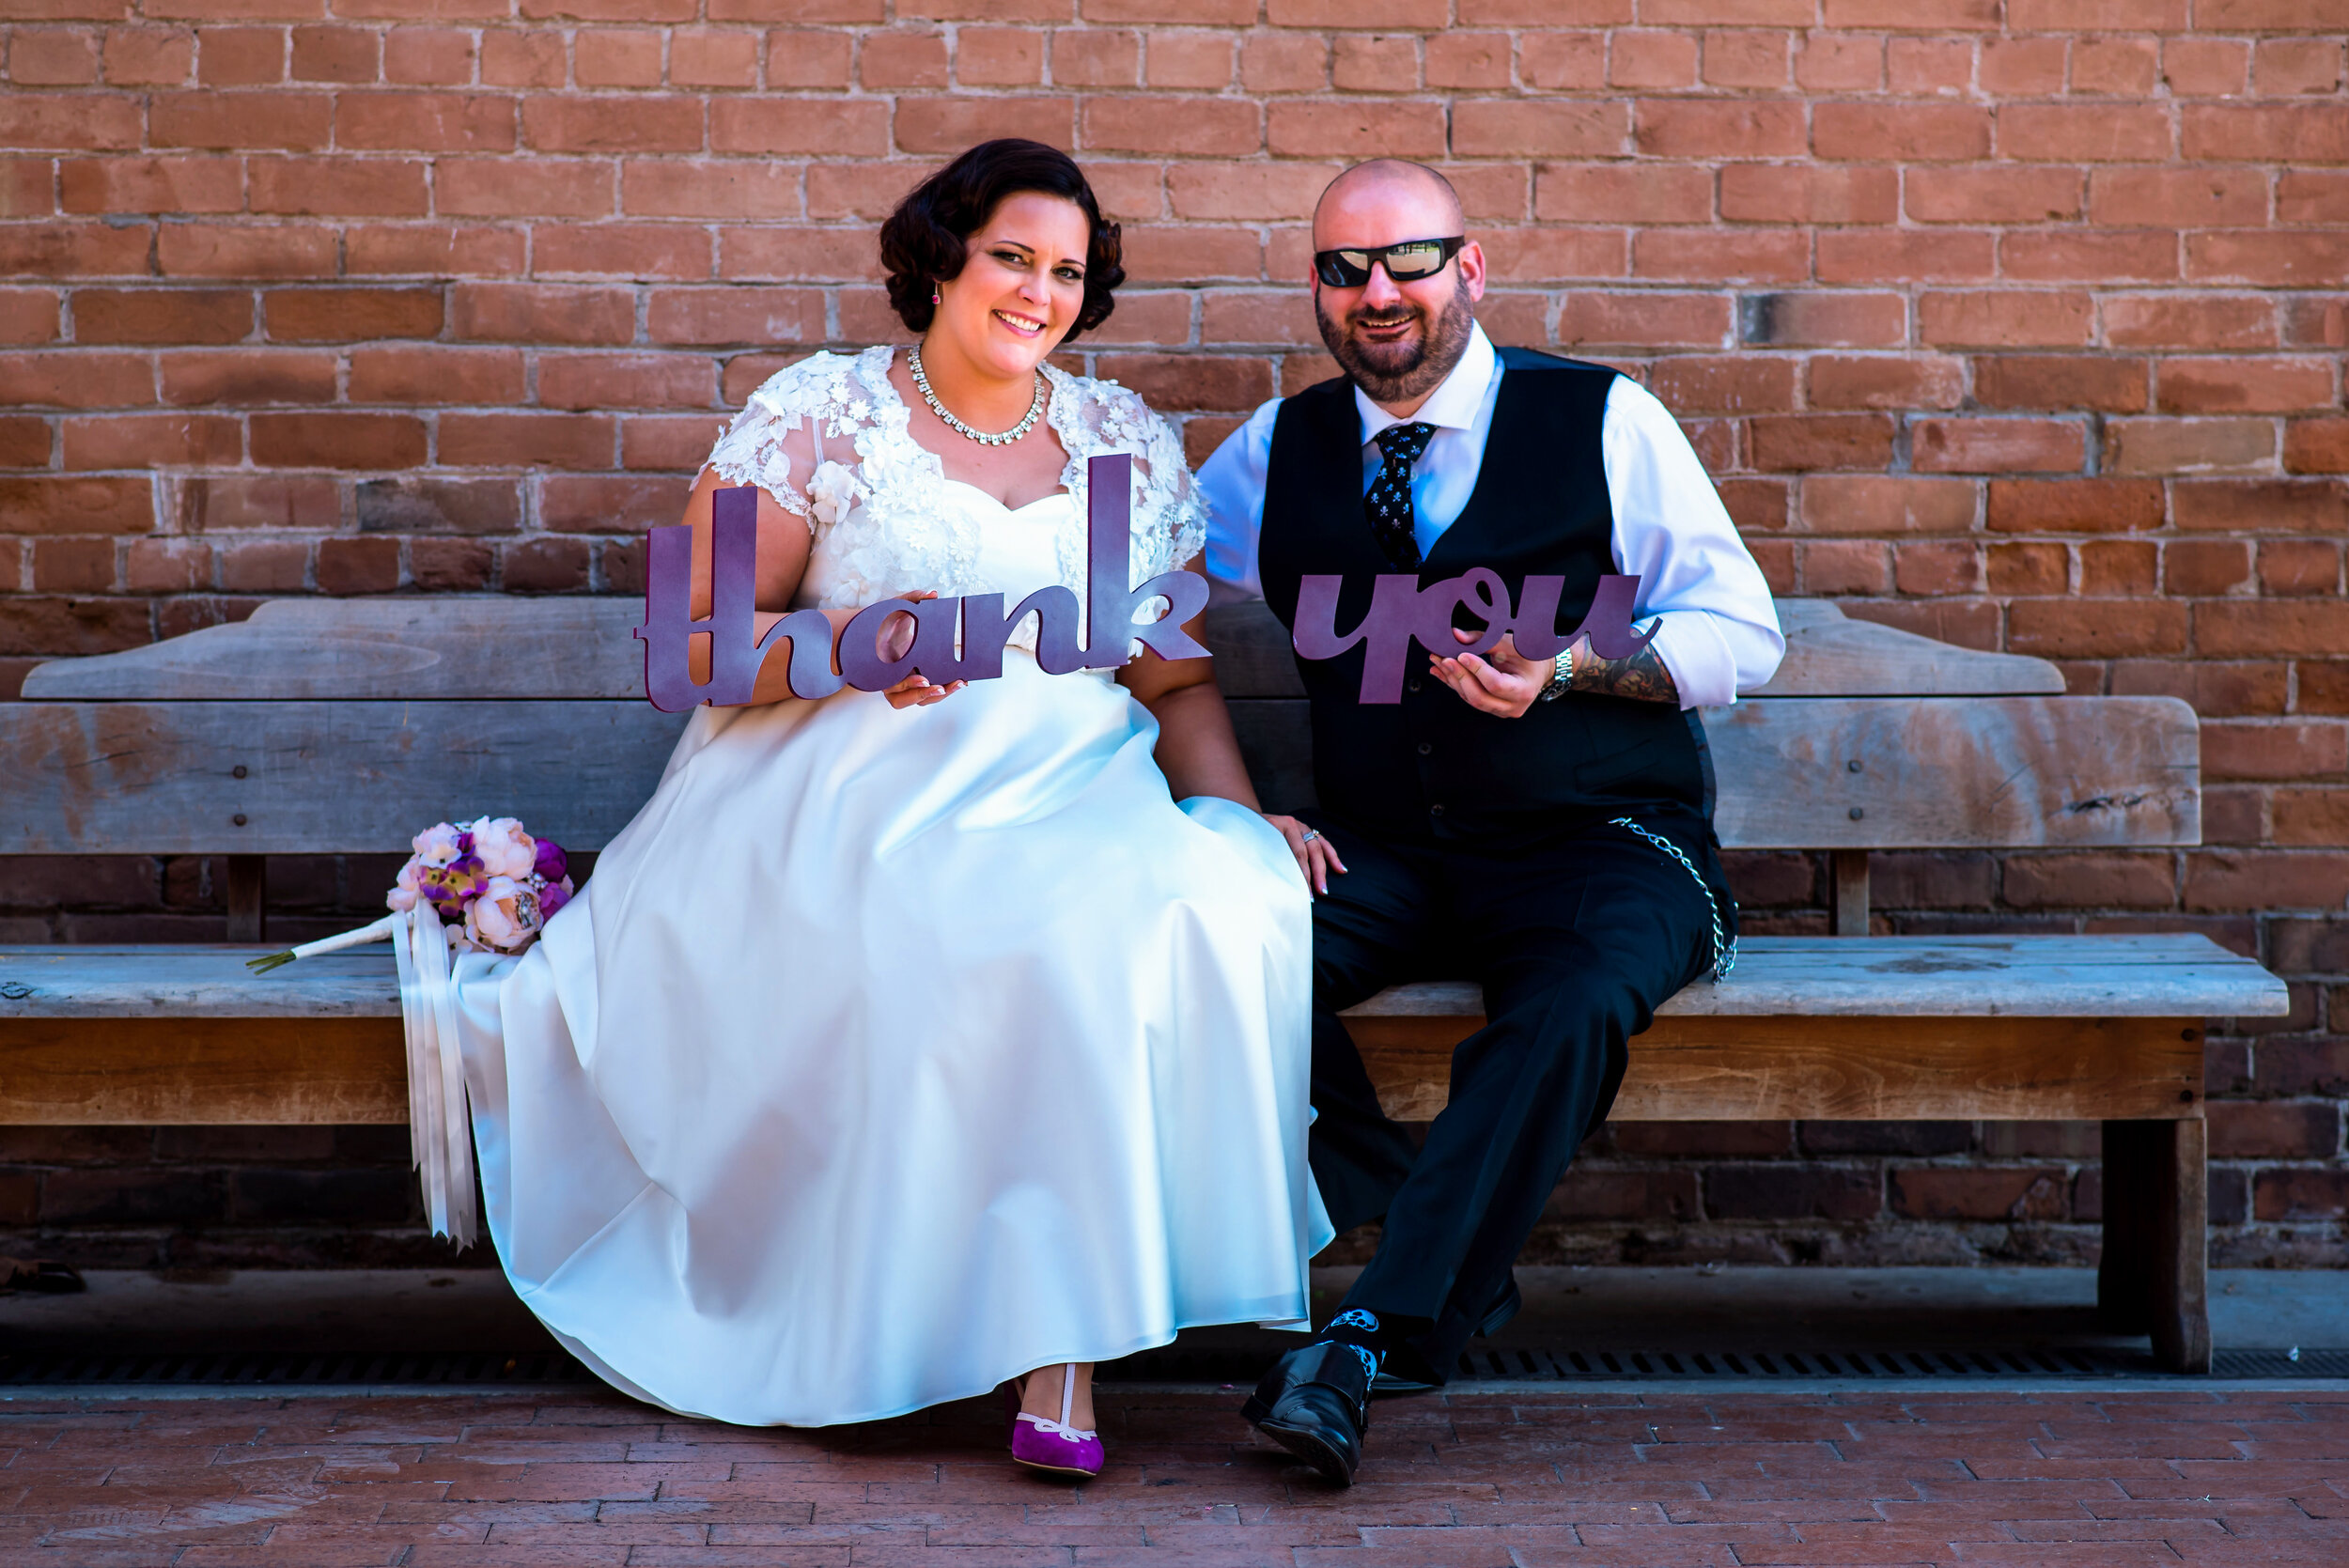 Rock N Roll themed bride and groom holding Thank You sign portrait.jpg